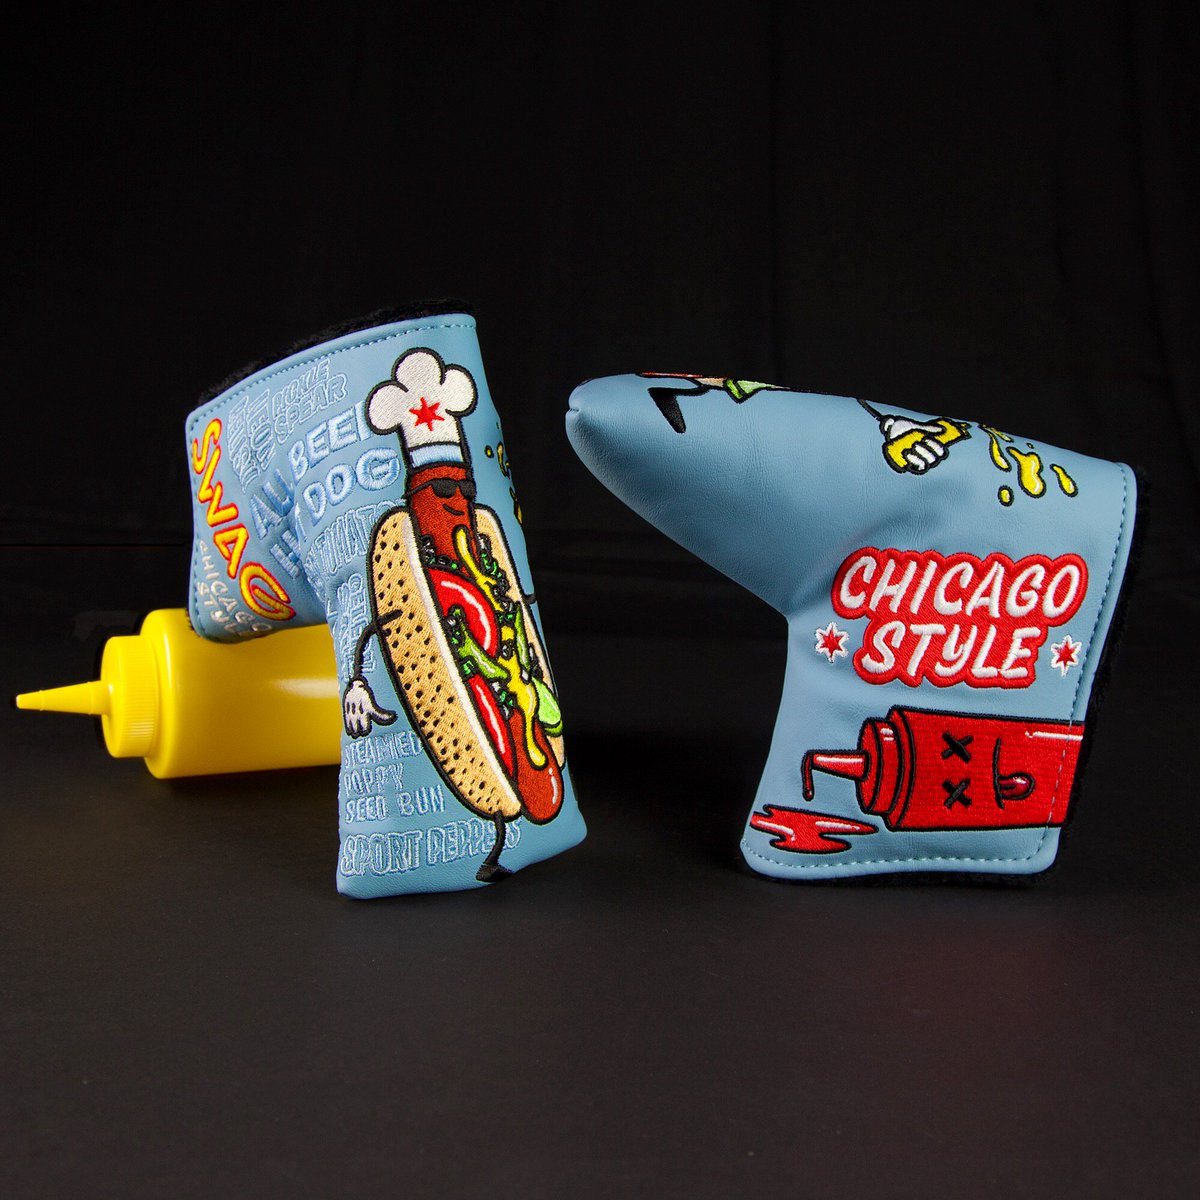 Our new Chicago Style covers don't taste as good a real Chicago Dog, but they sure look as good. #chicagostyle #headcover<br>http://pic.twitter.com/14dvTHIRob